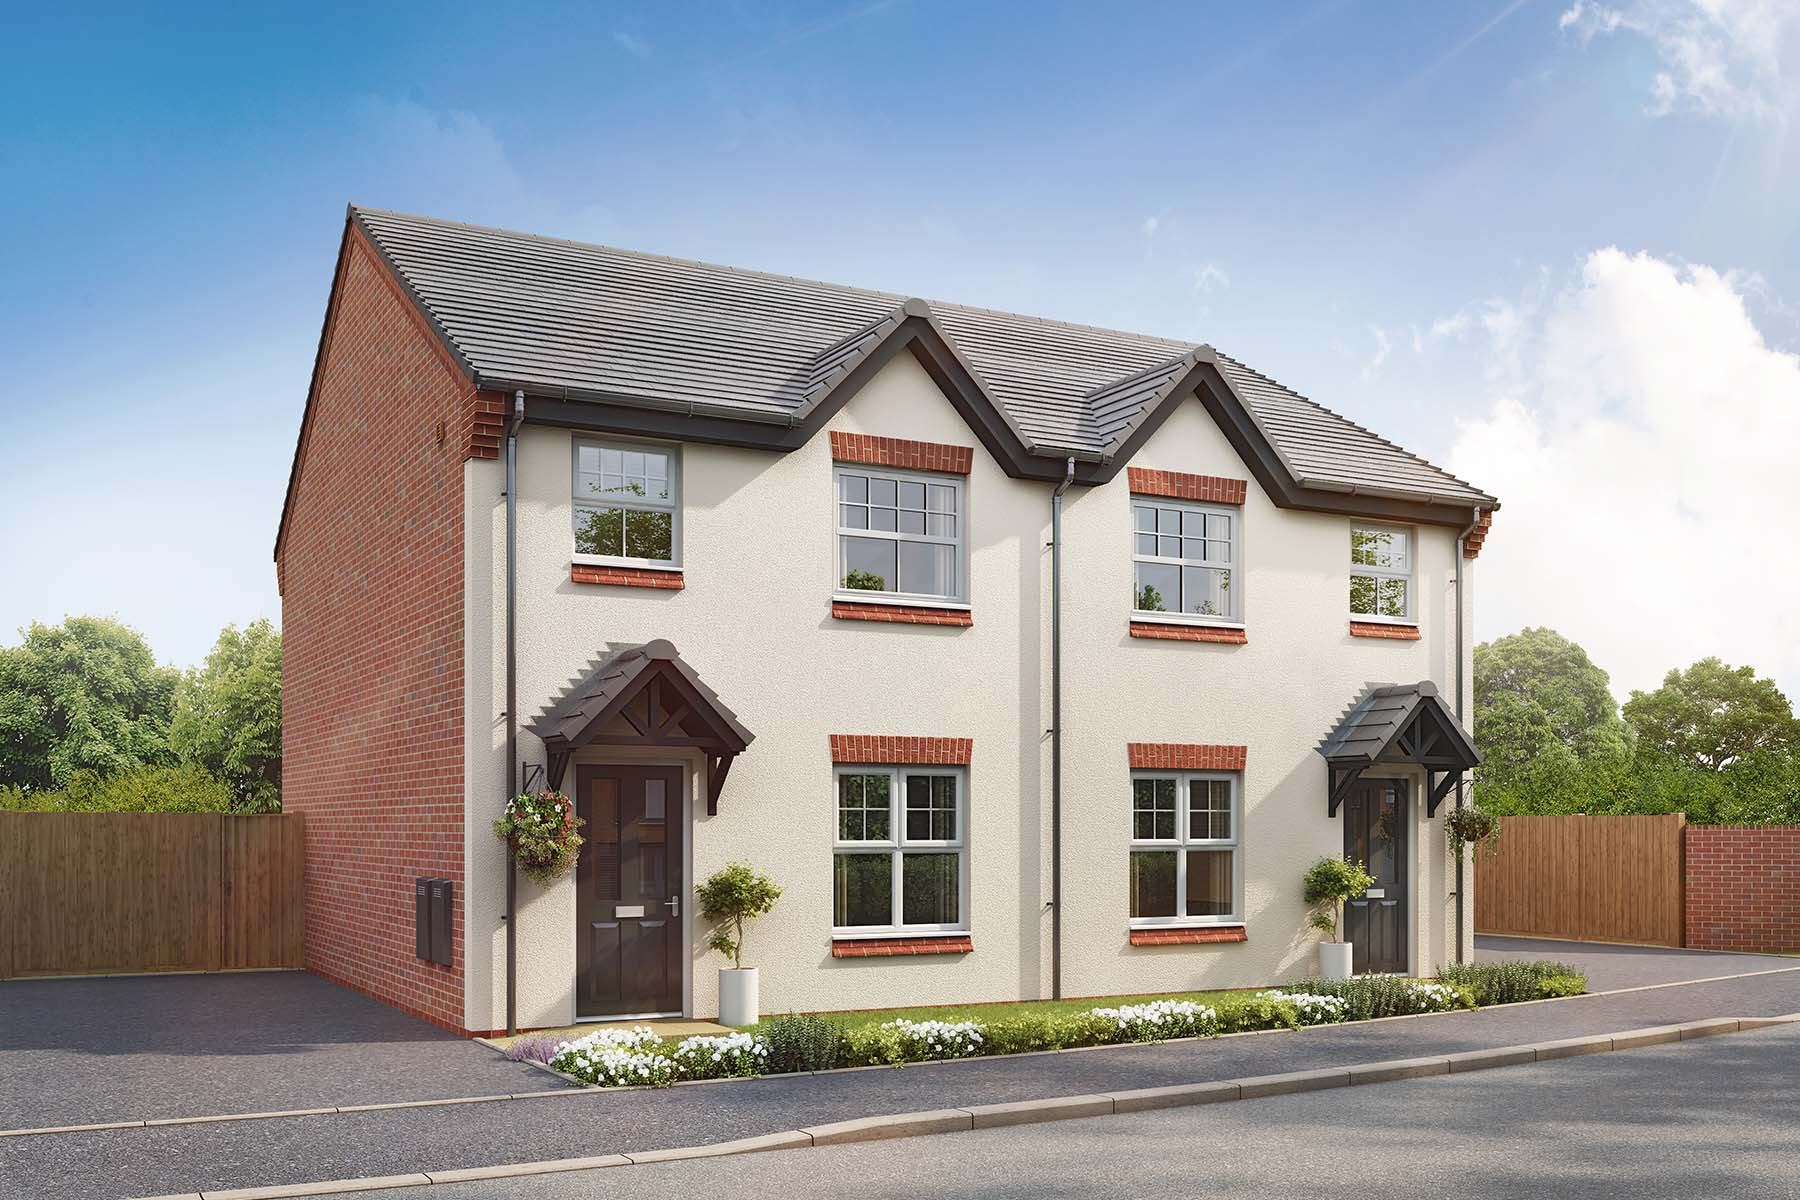 CGI-Mulberry-Lane-Gosford-TA34-V2-Plots-71-72